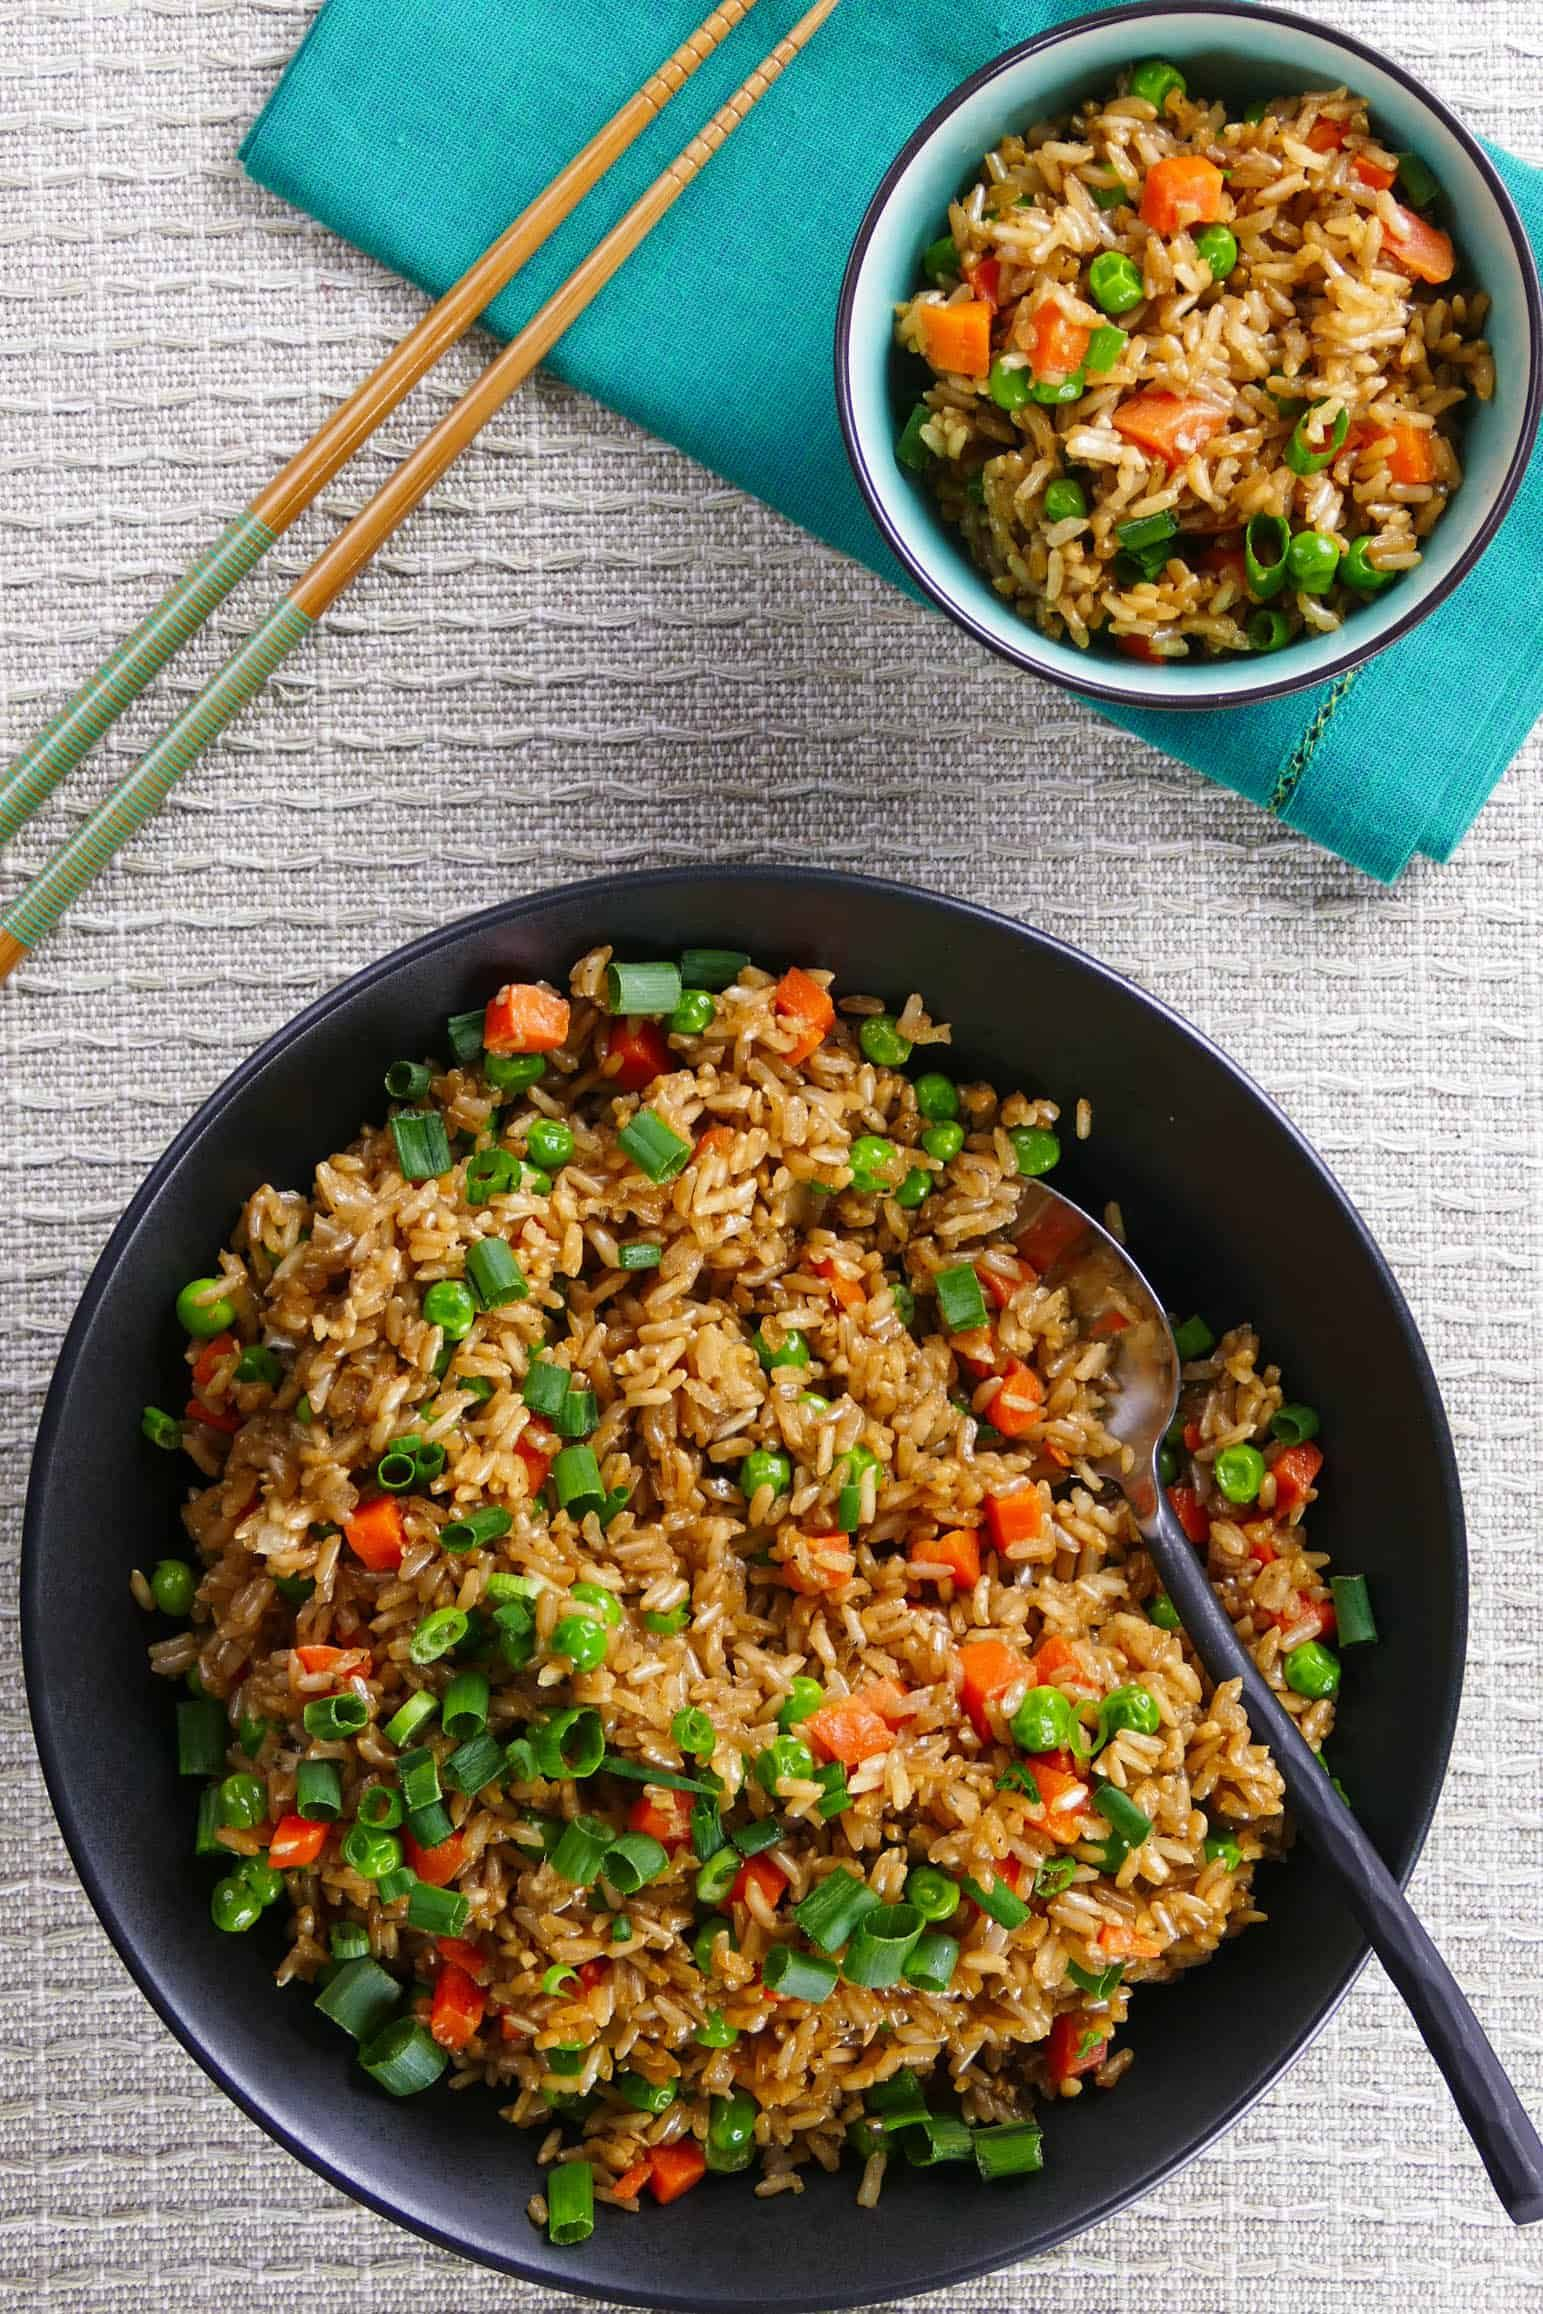 Healthy Chinese Style Instant Pot Brown Rice And Vegetables Recipe Fried Rice Instant Pot Recipes Brown Rice Recipes